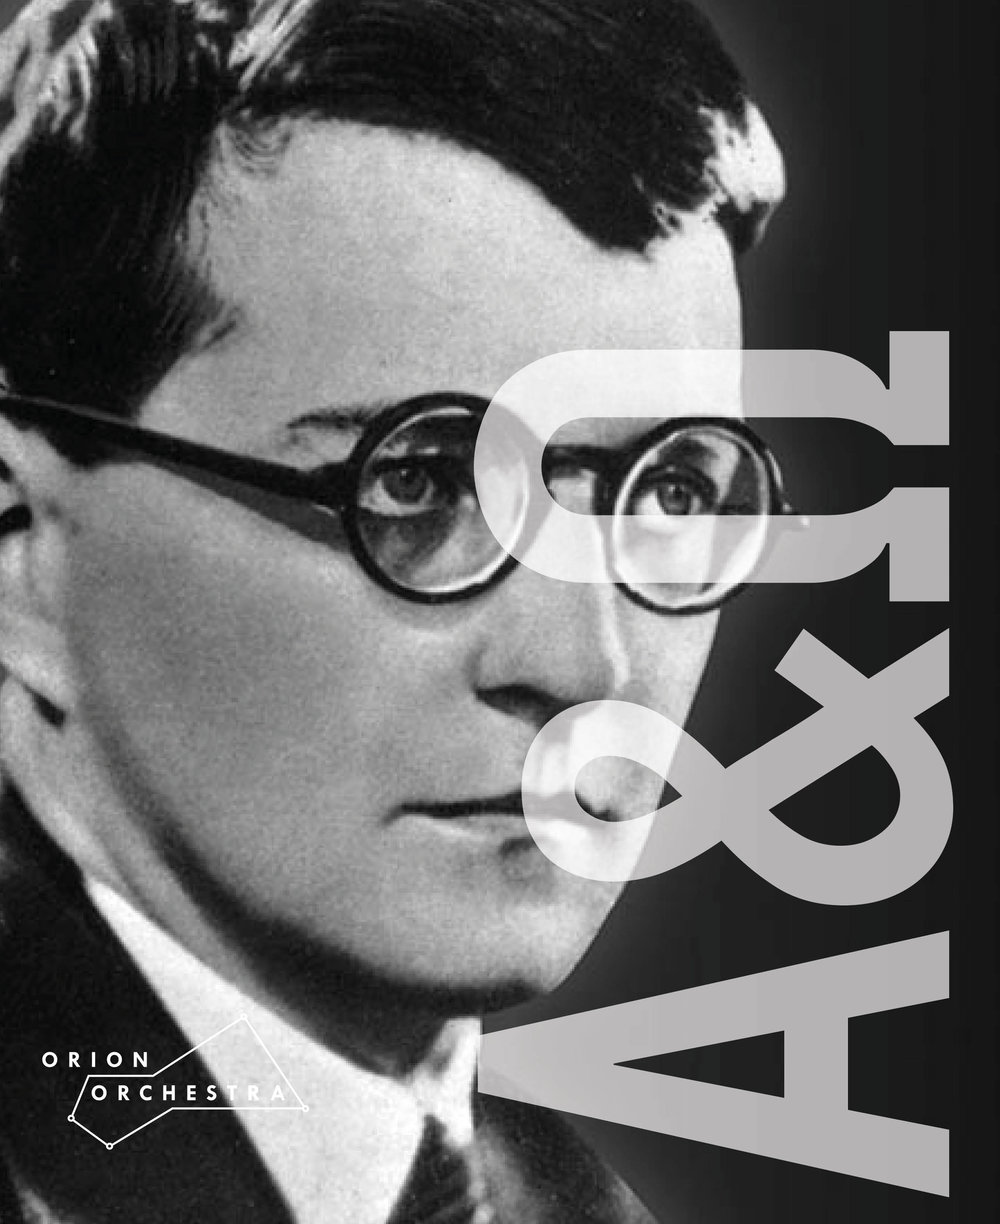 Alpha &Omega - 3 - Tuesday 9th October, 2018Shostakovich Symphony No. 1Shostakovich Symphony No. 15